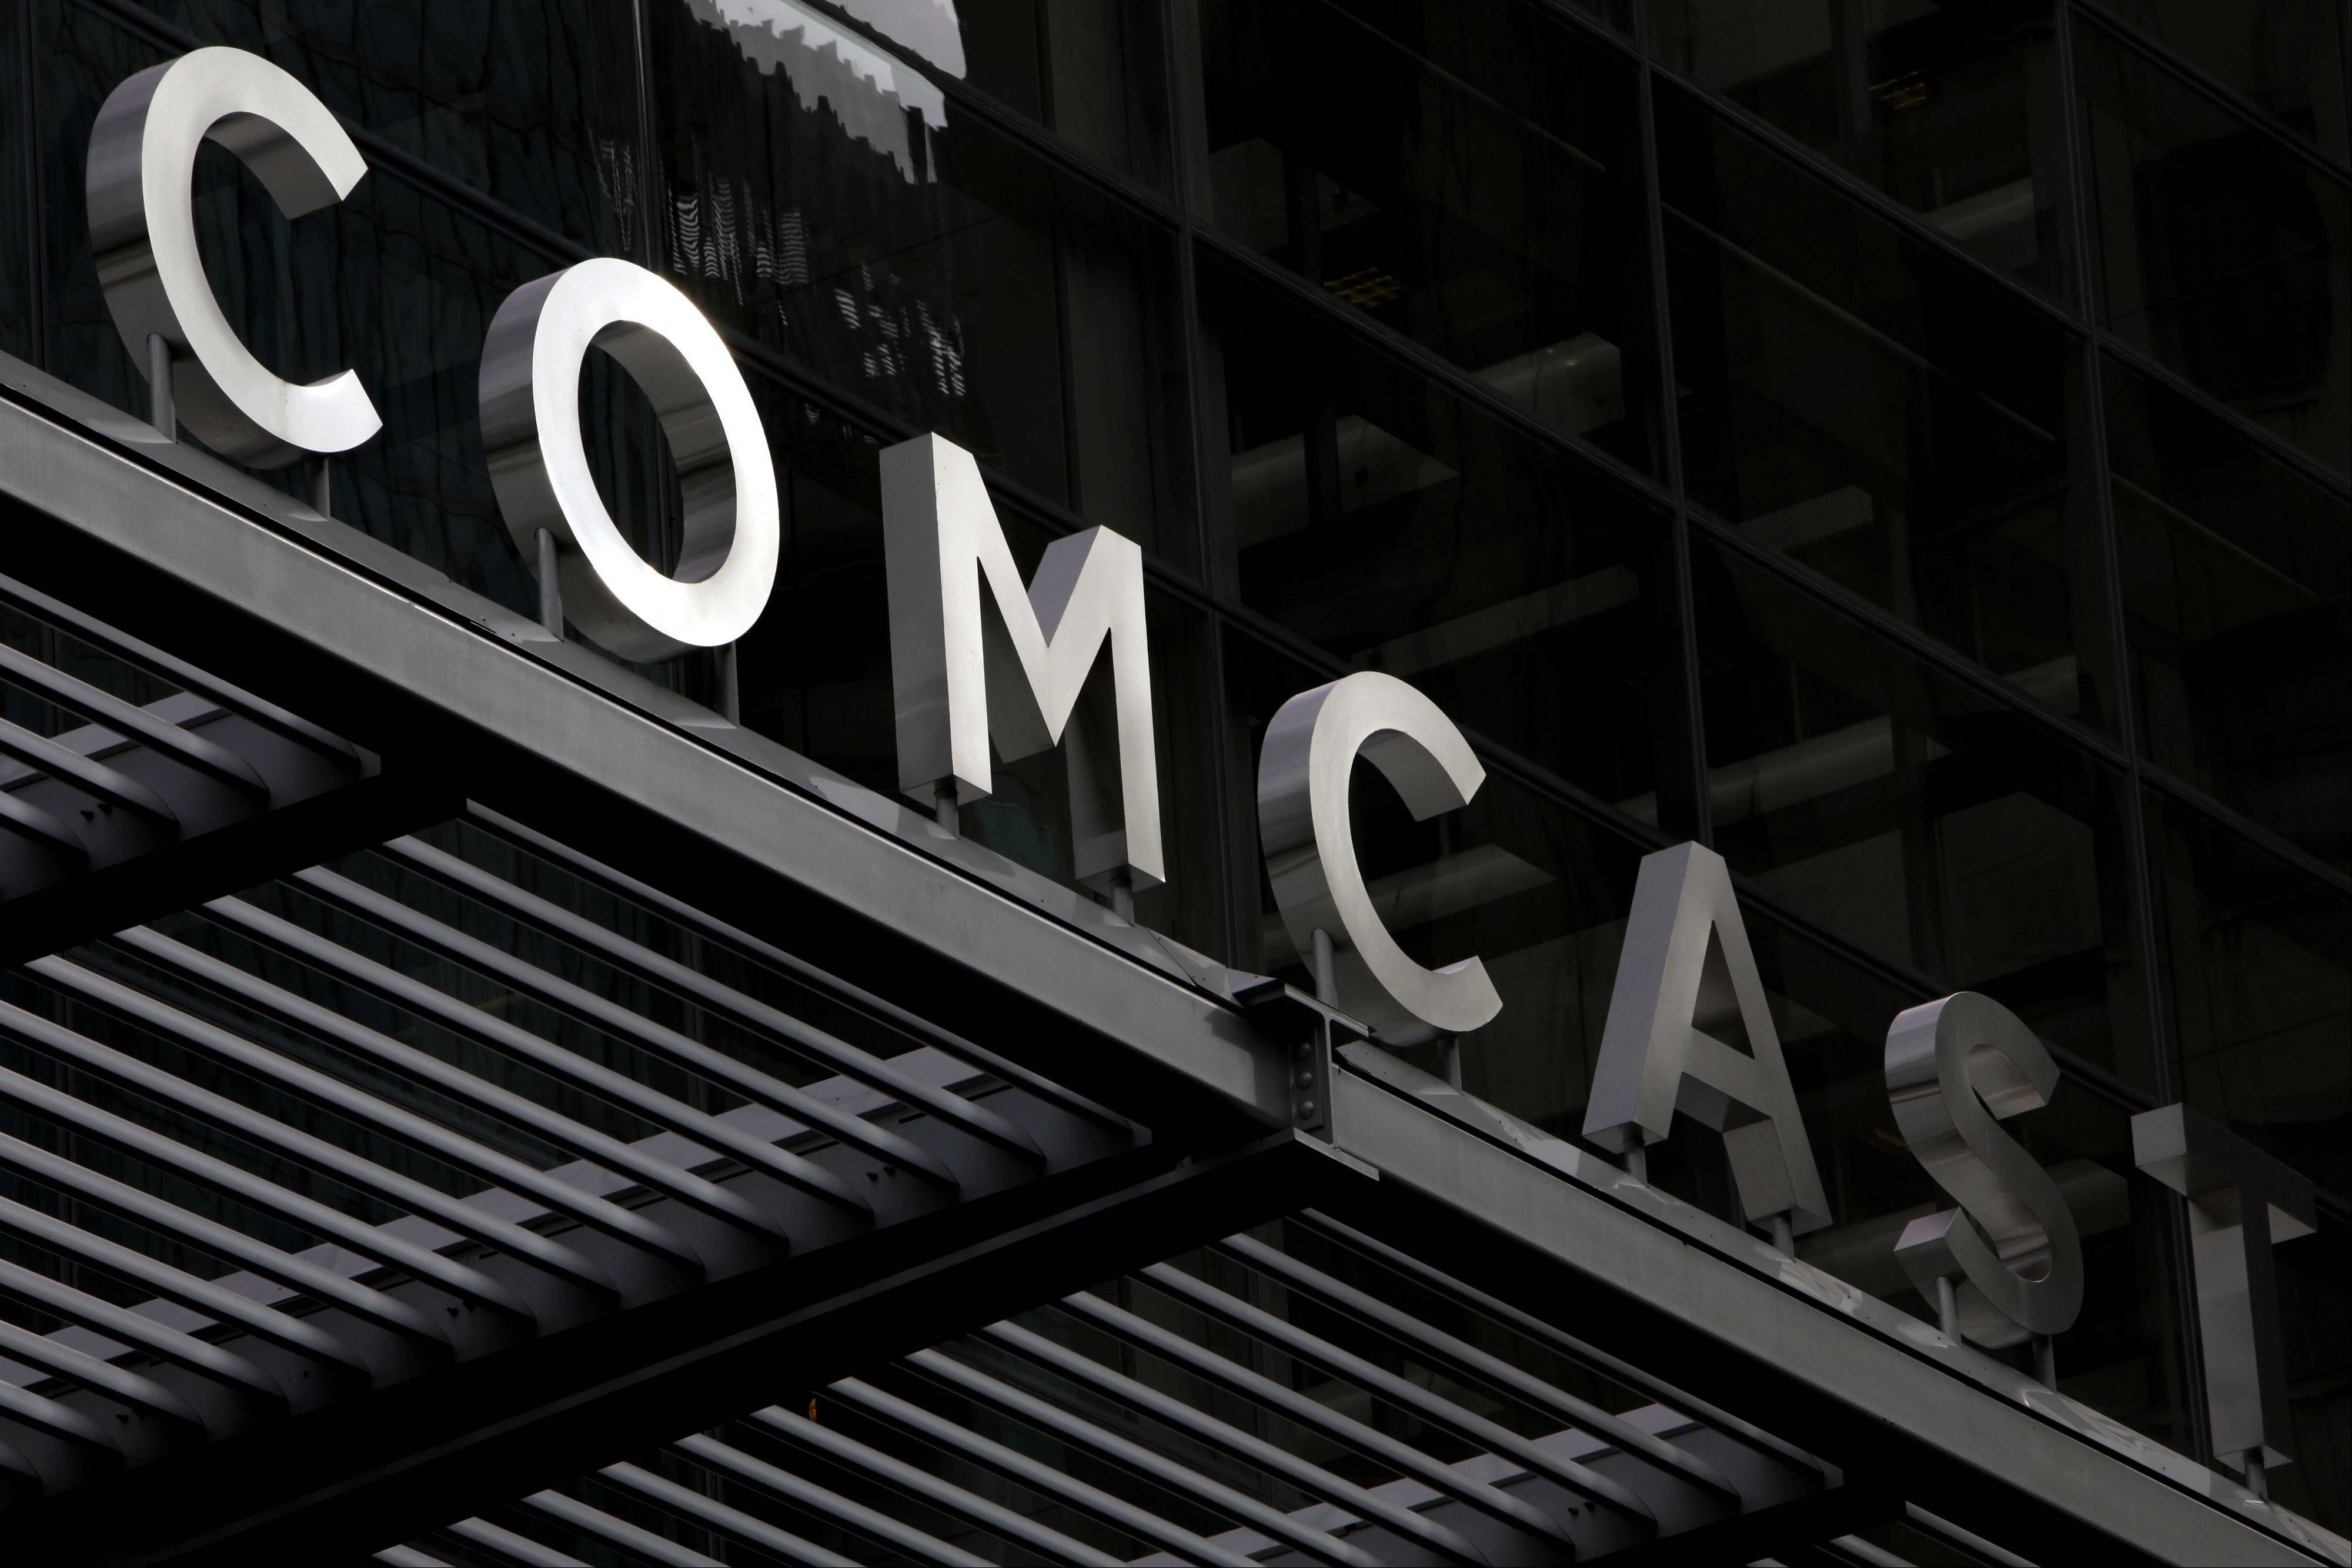 The Supreme Court on Wednesday turned away a class action lawsuit against cable provider Comcast Corp. in a decision that could make it harder to file those types of lawsuits in federal court.